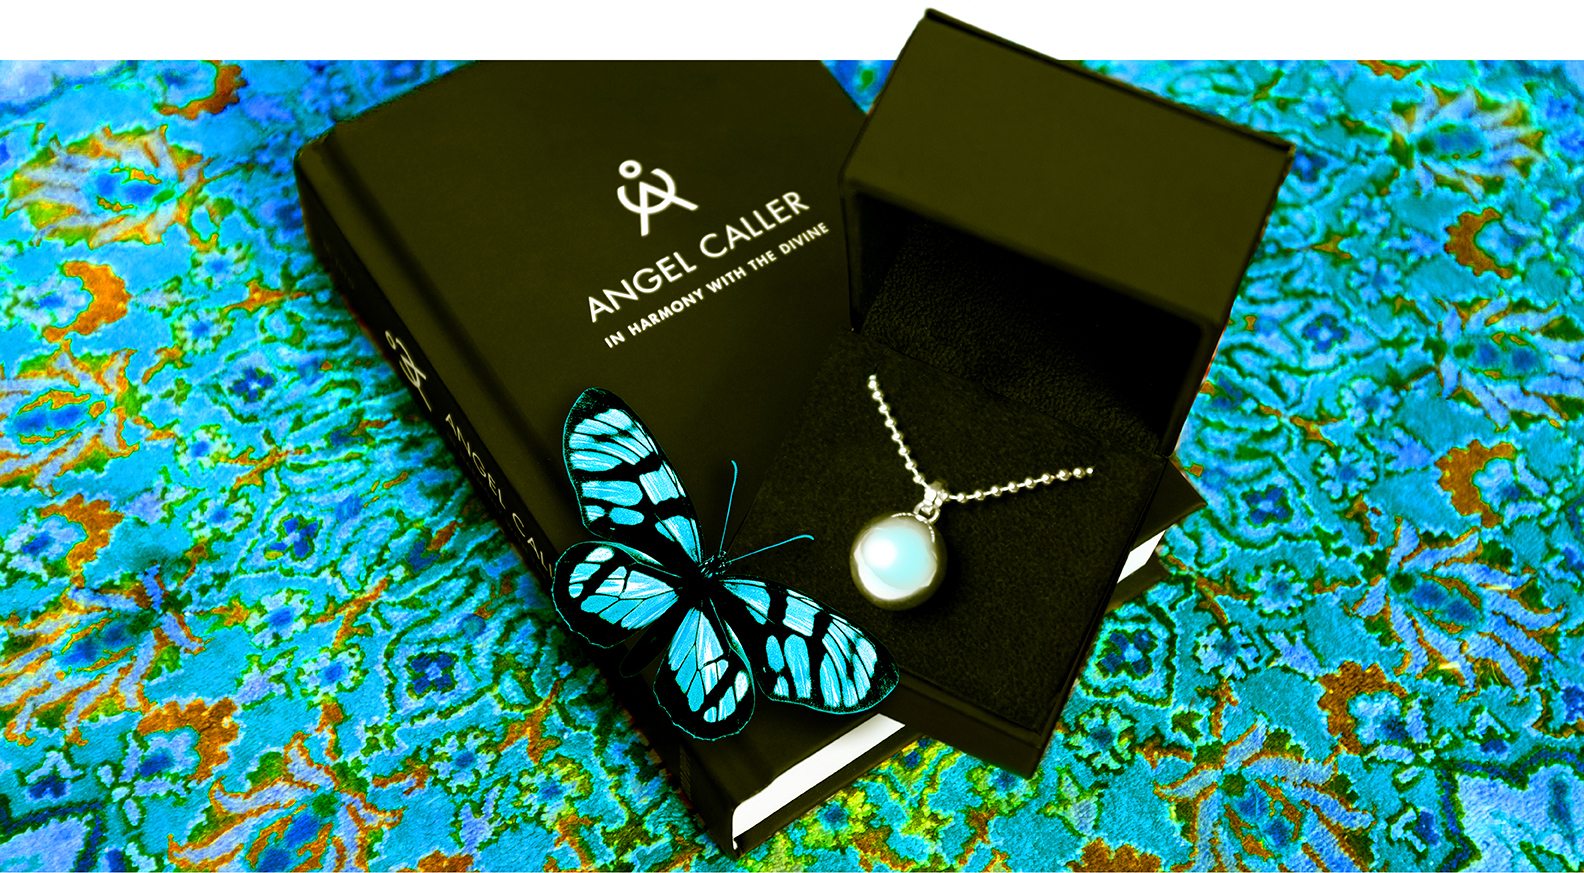 Spiritual_Alignment-Angel_Caller_Chime_Ball_Necklace_And_Book.jpg